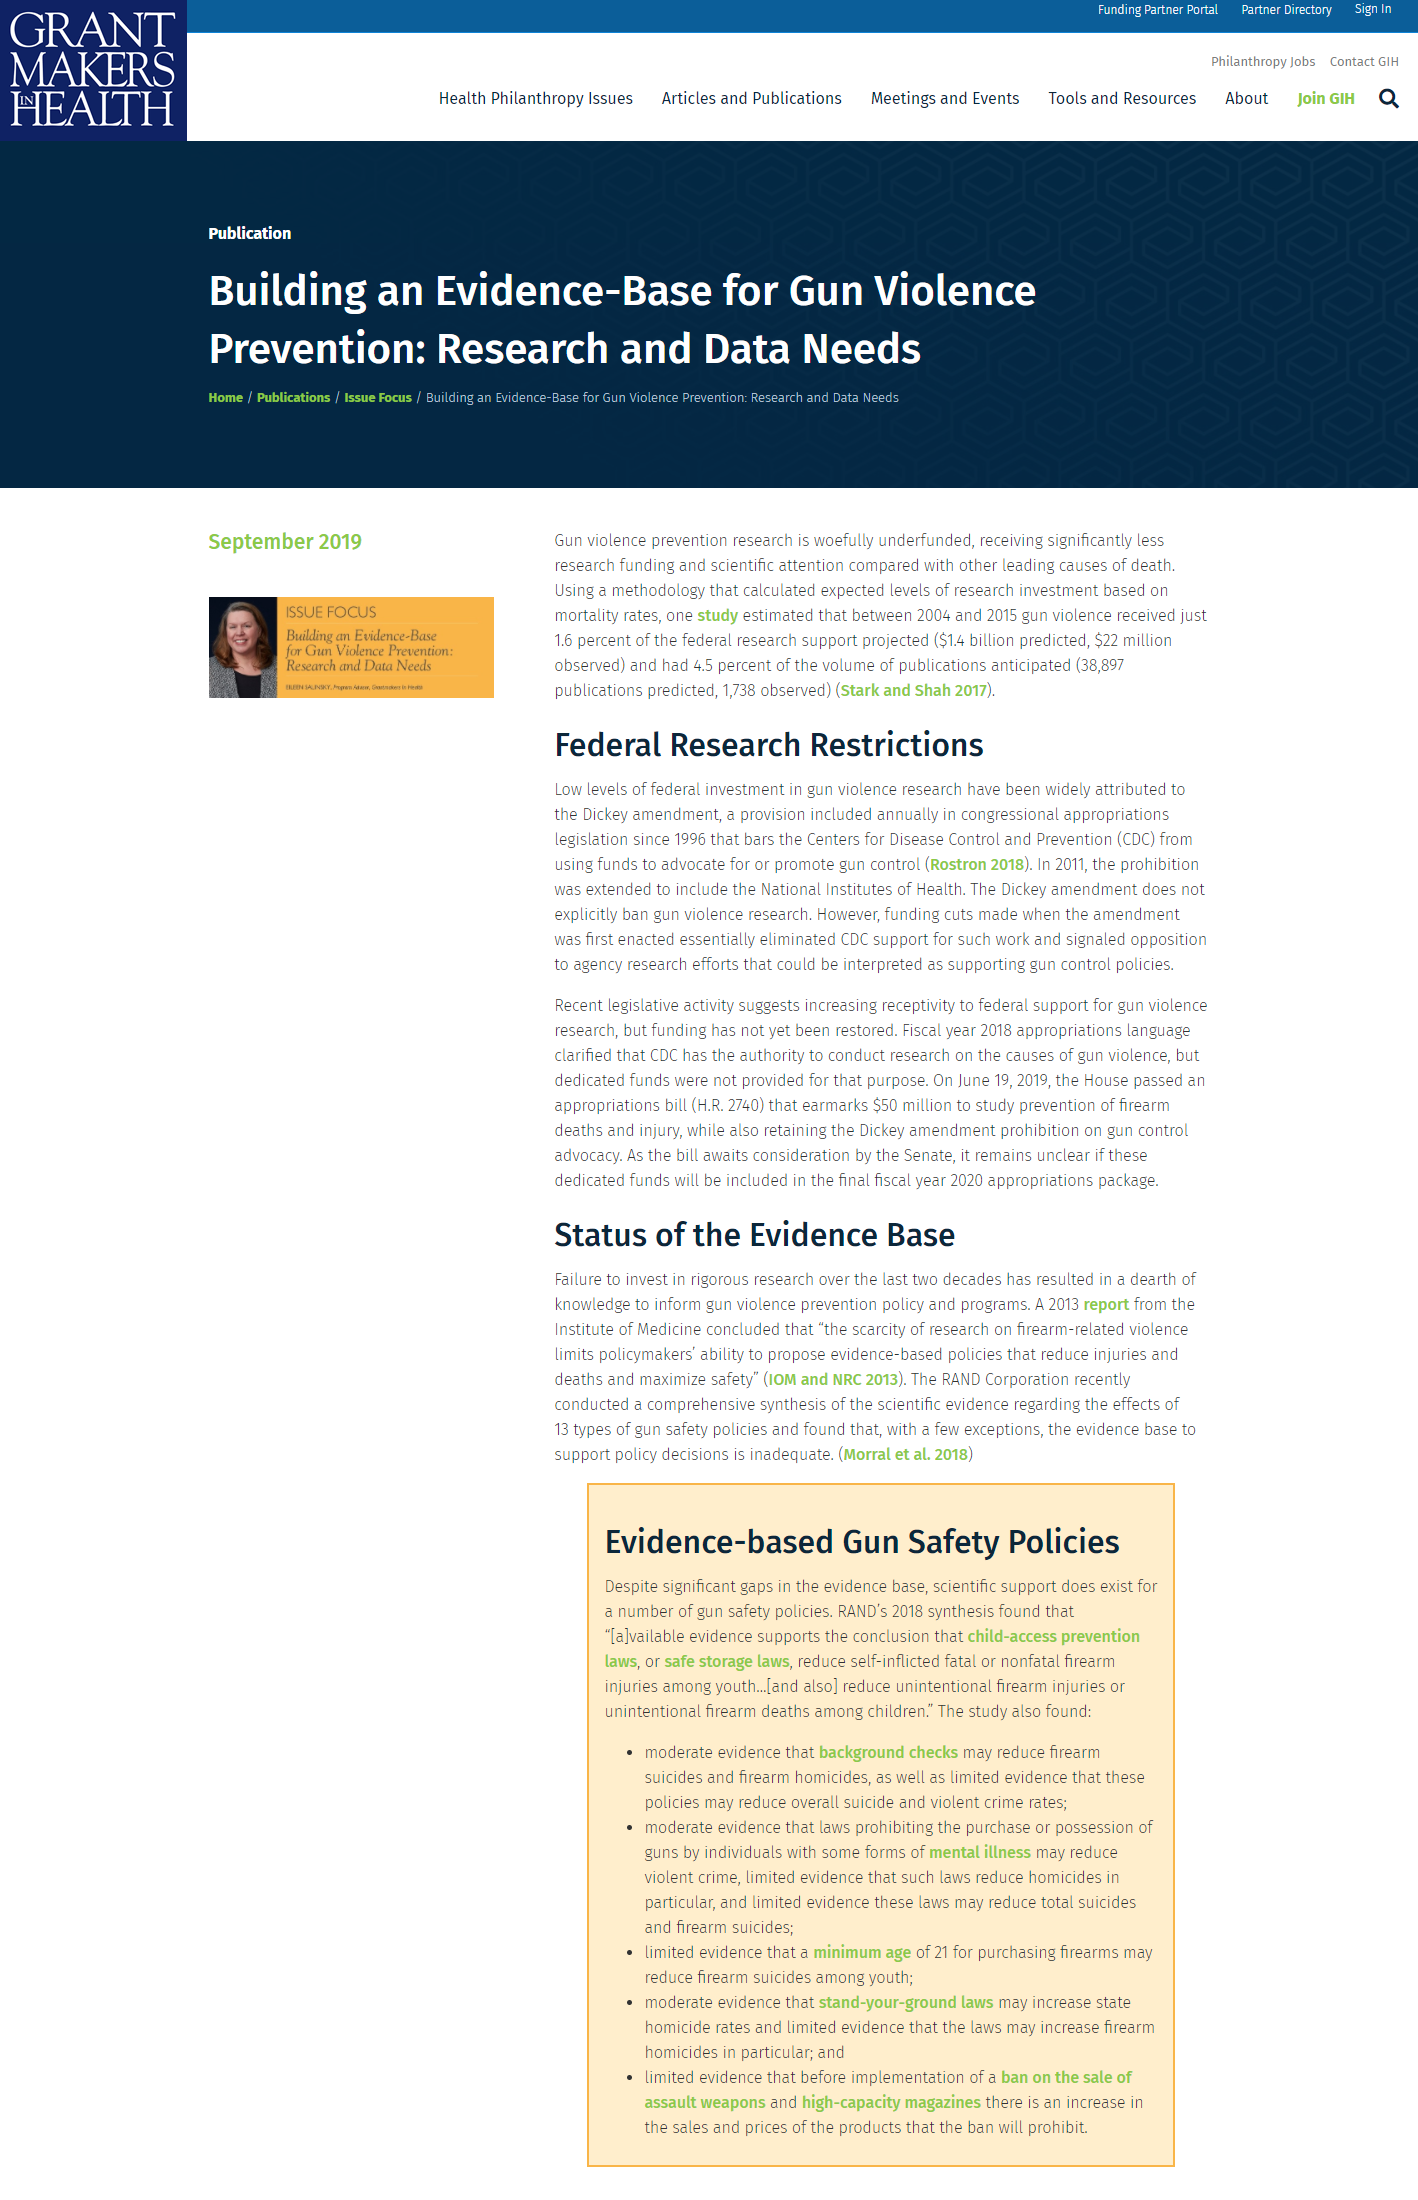 Building an Evidence-Base for Gun Violence Prevention: Research and Data Needs